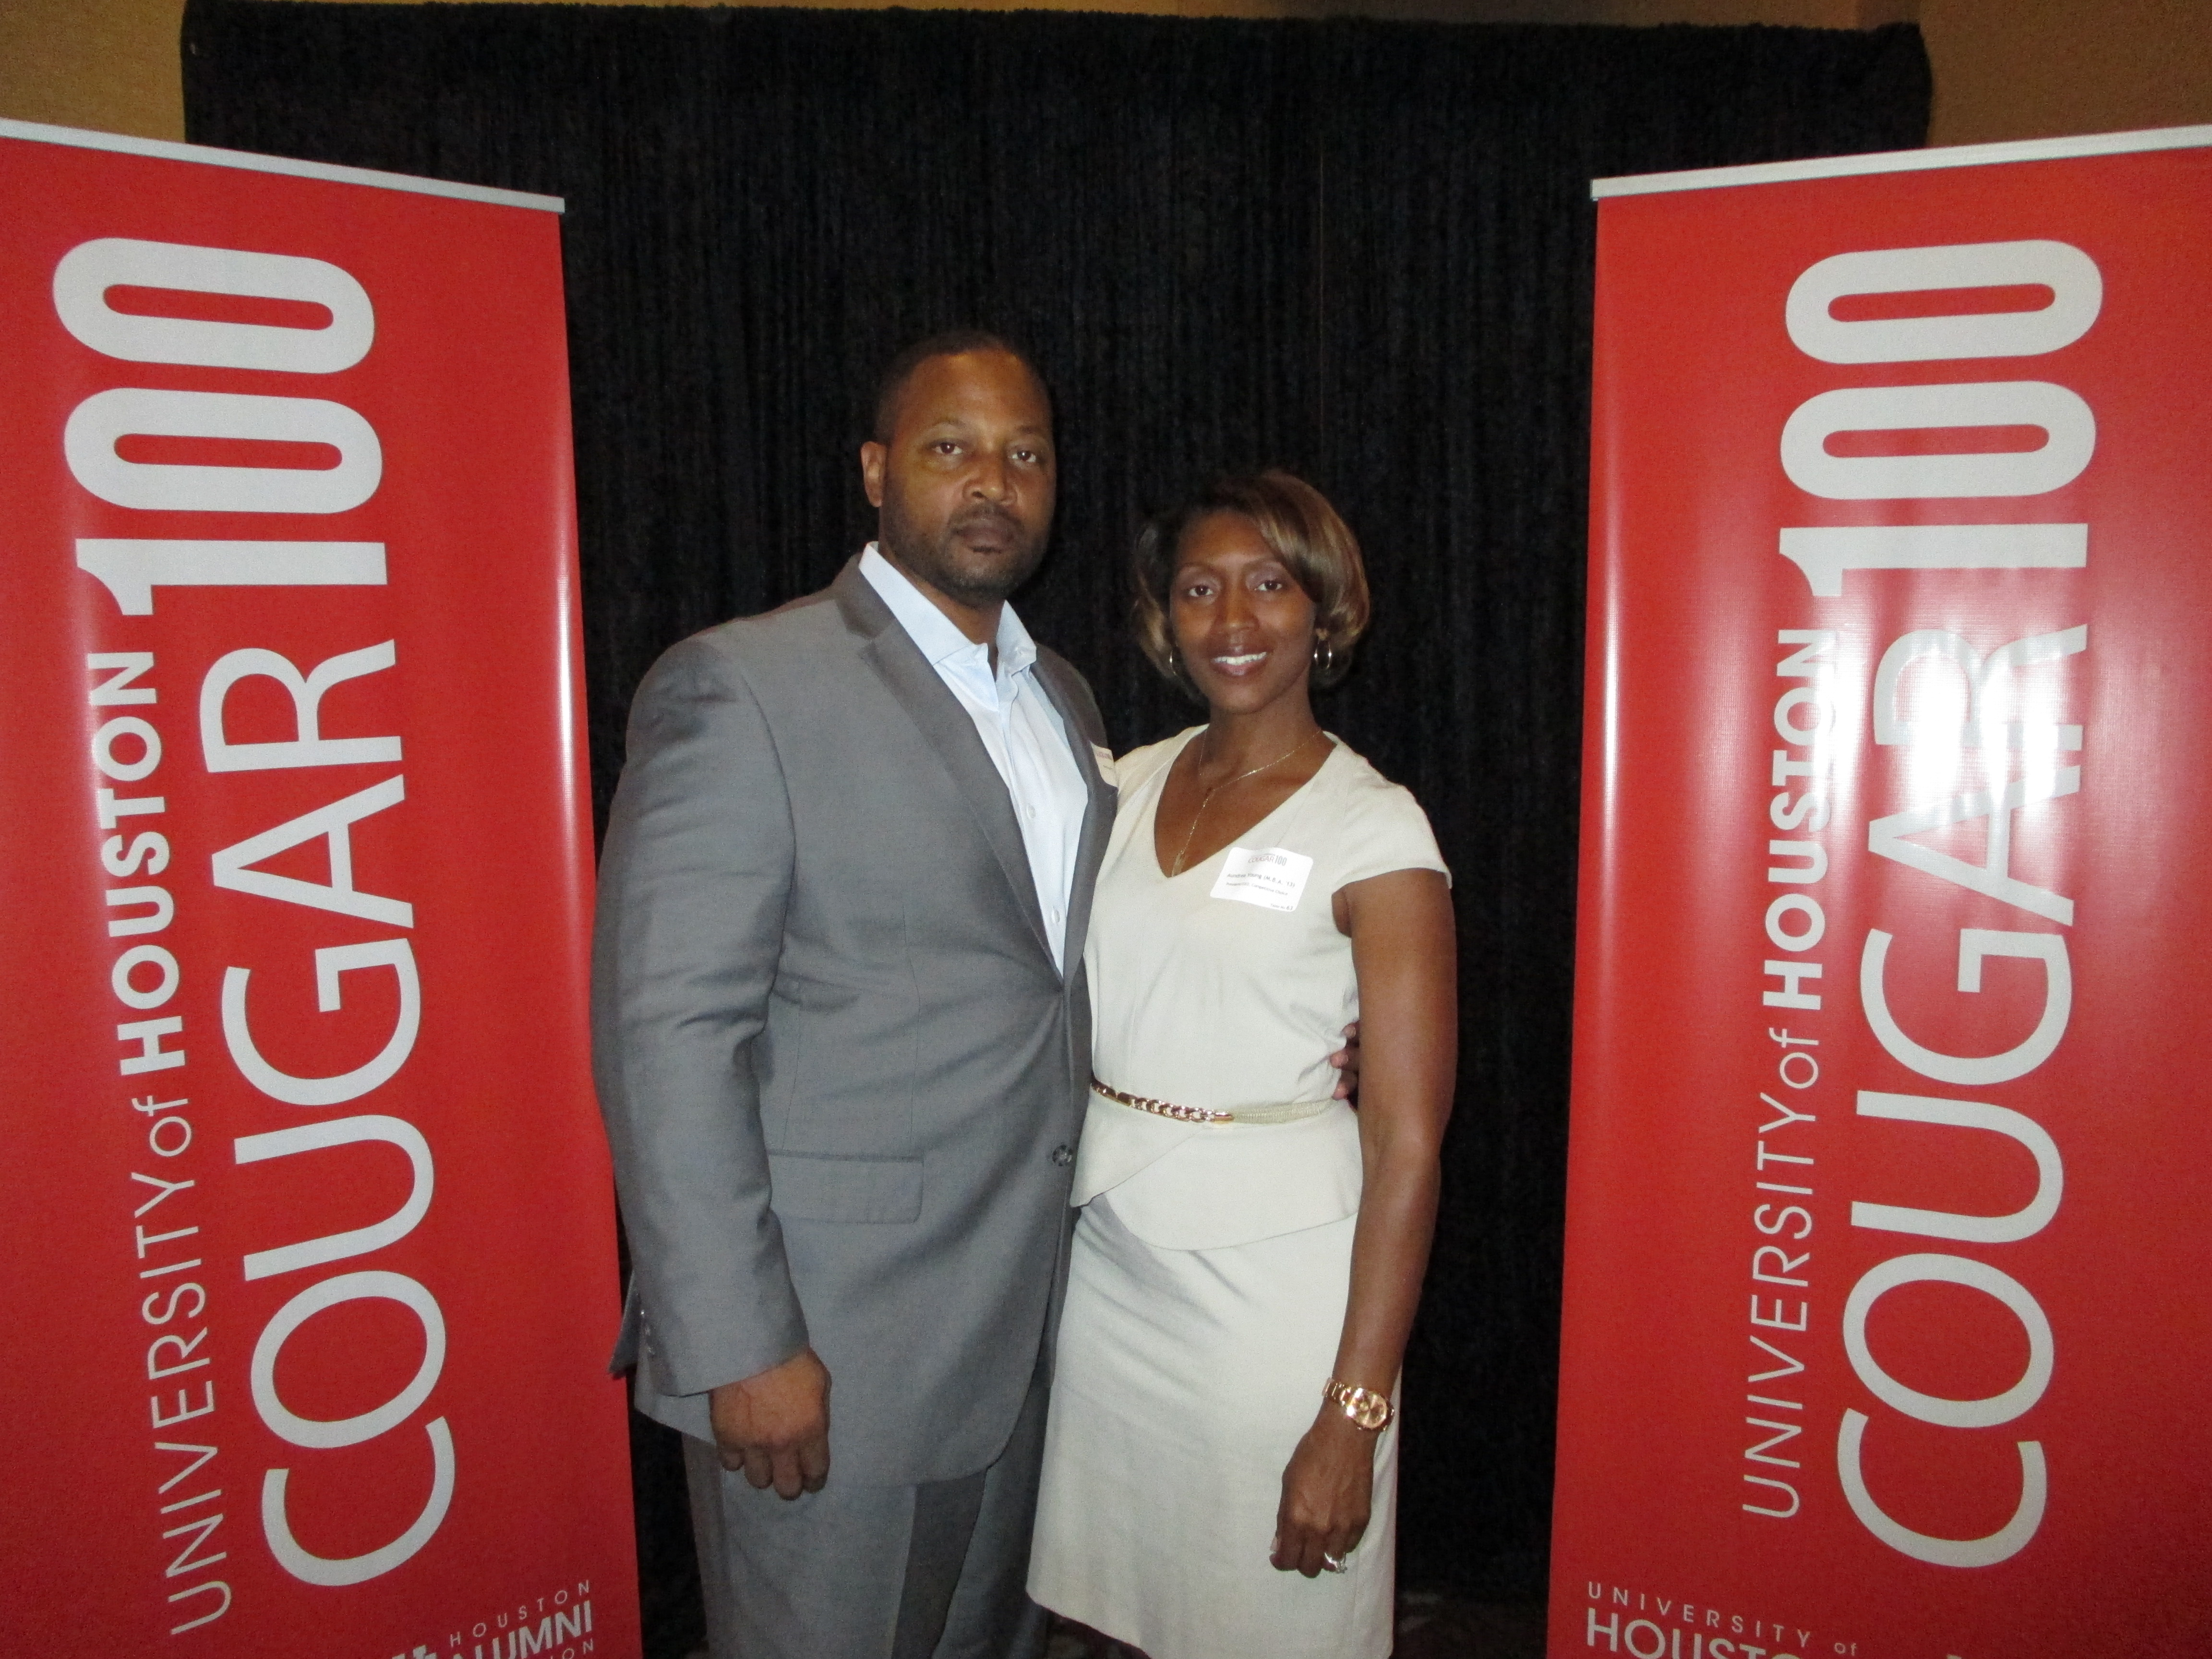 Aundrea and Richard at the Cougar 100 Luncheon